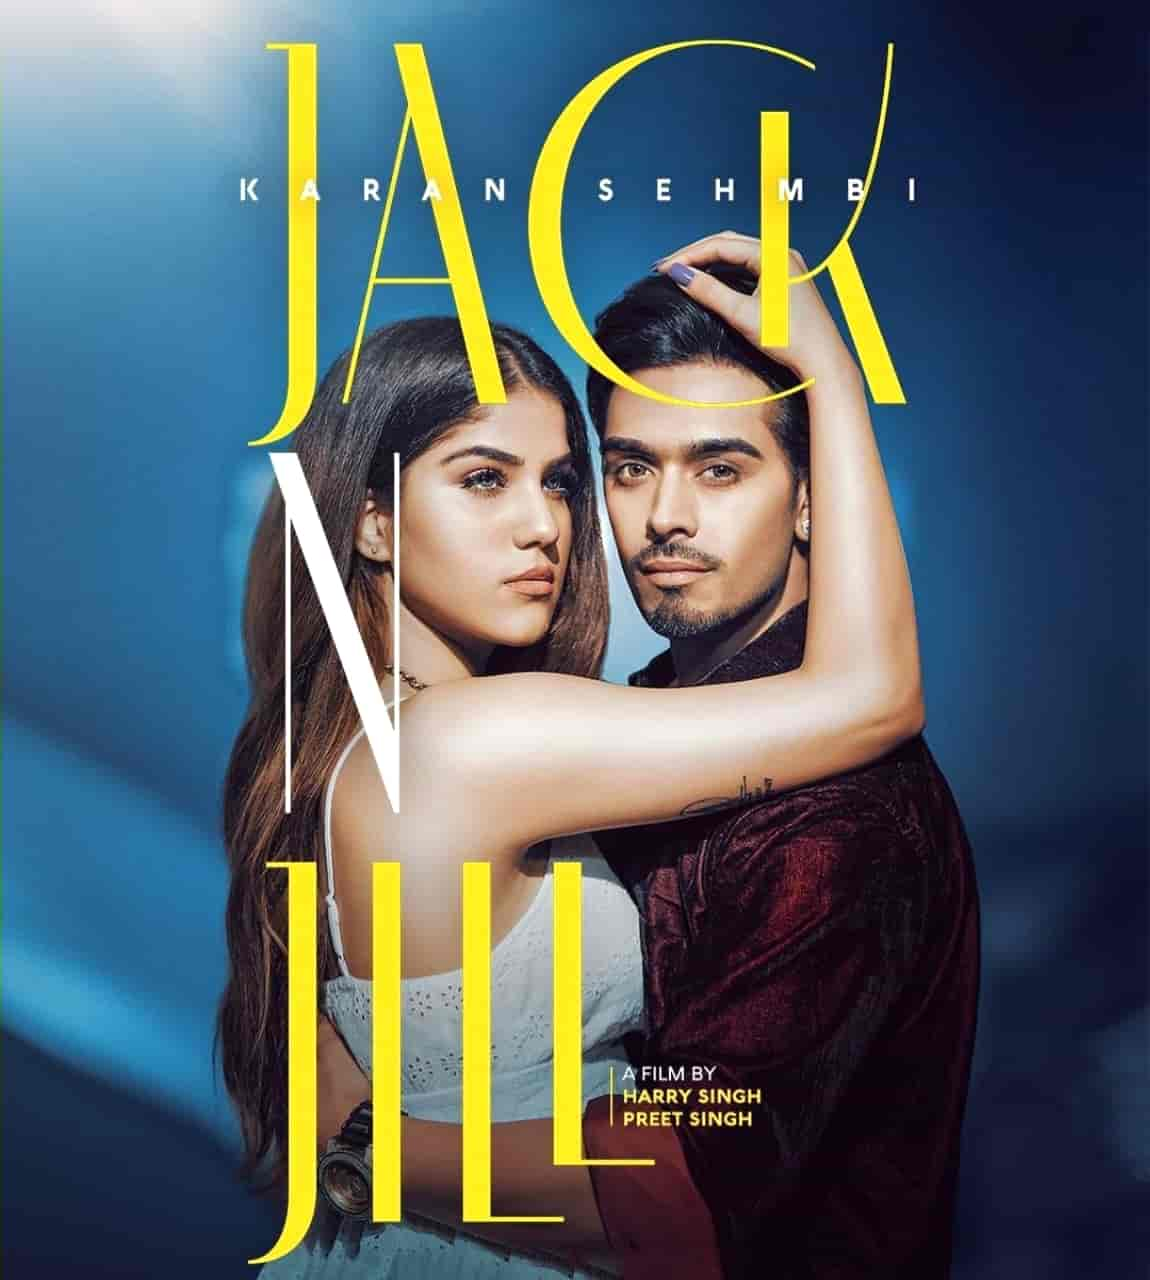 Jack N Jill Punjabi Song Image Features Karan Sehmbi and Aveera Singh